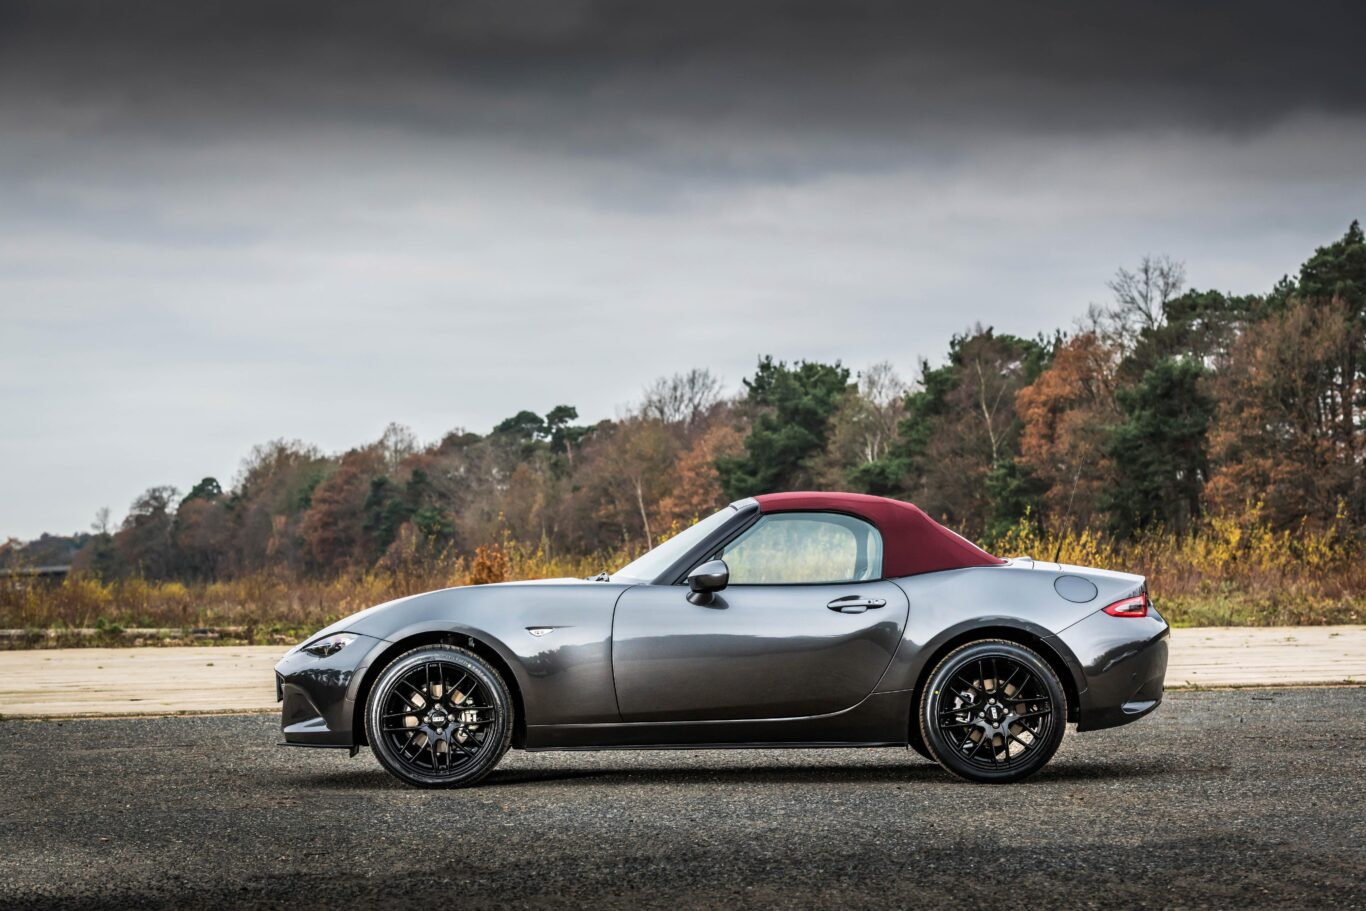 Mazda's MX-5 continues to enjoy plenty of popularity